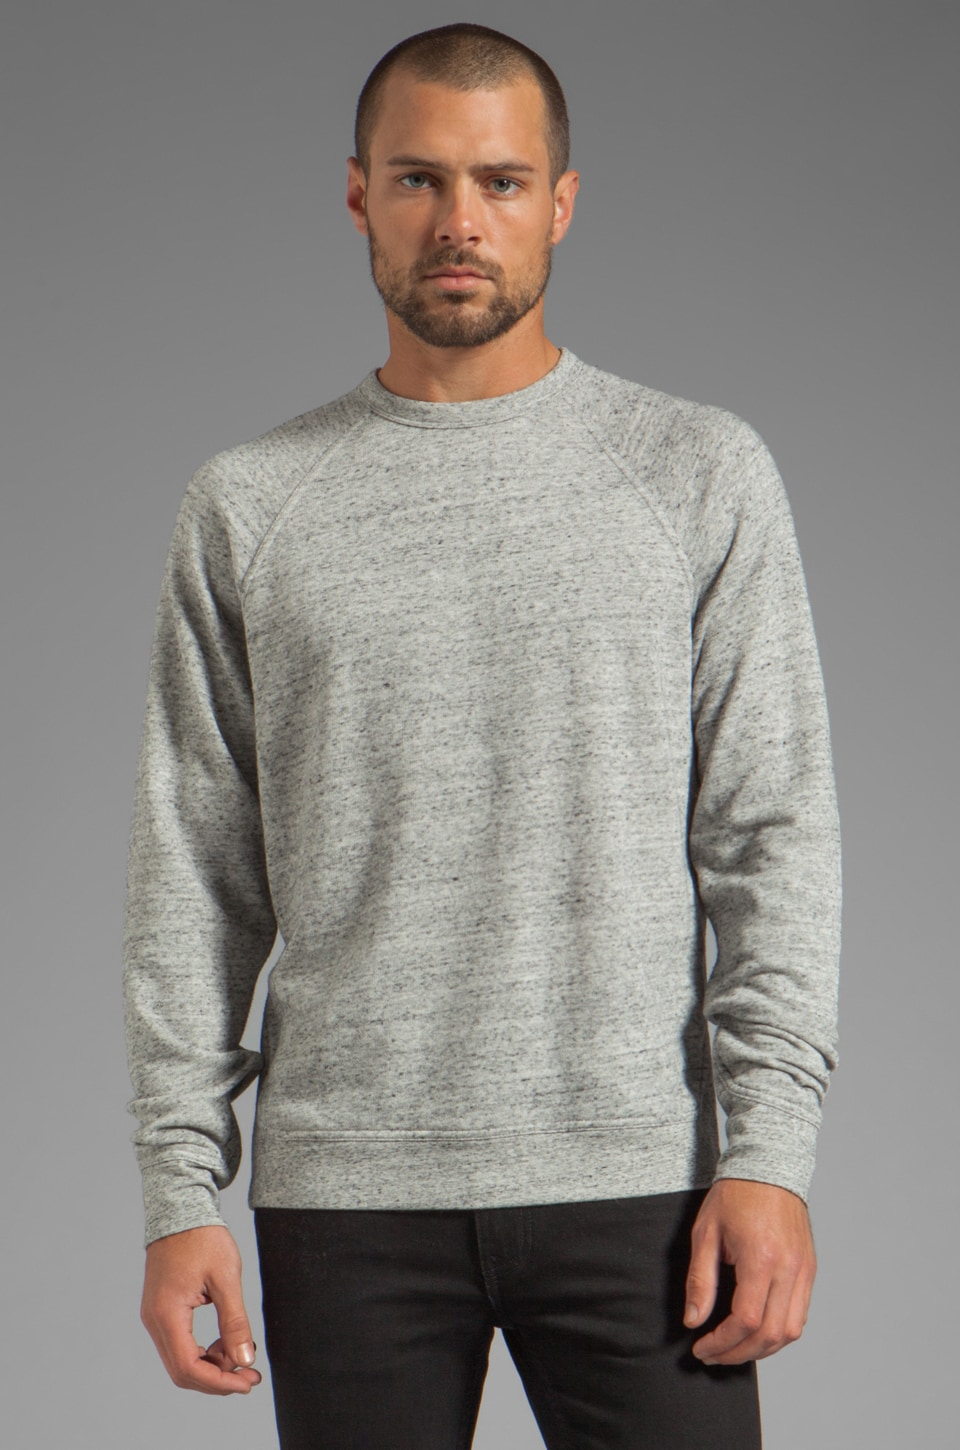 T by Alexander Wang French Terry Sweatshirt in Light Heather Grey